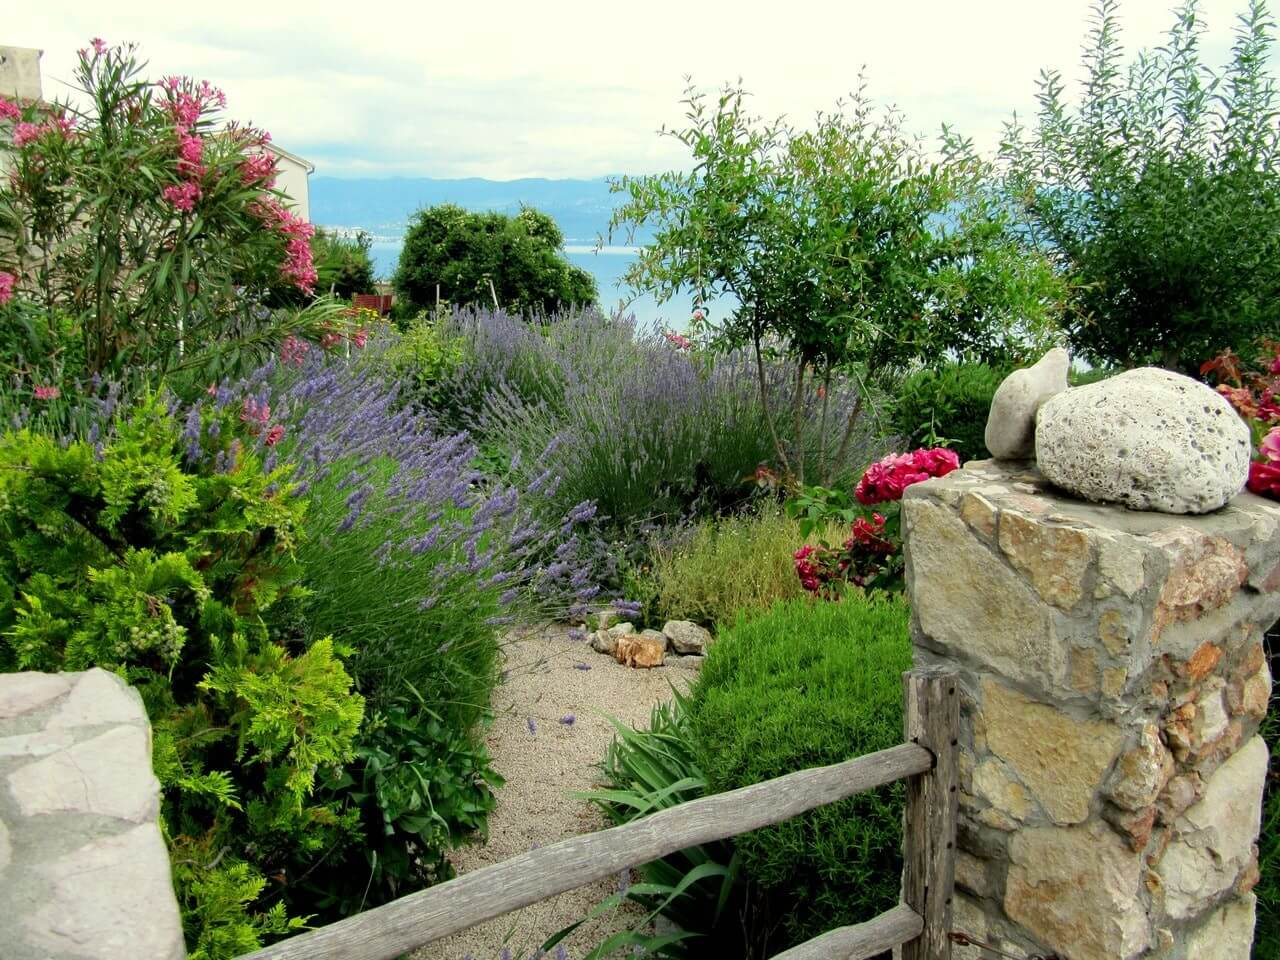 view of the Mediterranean Sea with in the foreground a garden planted with oleanders, lavender and thujas.